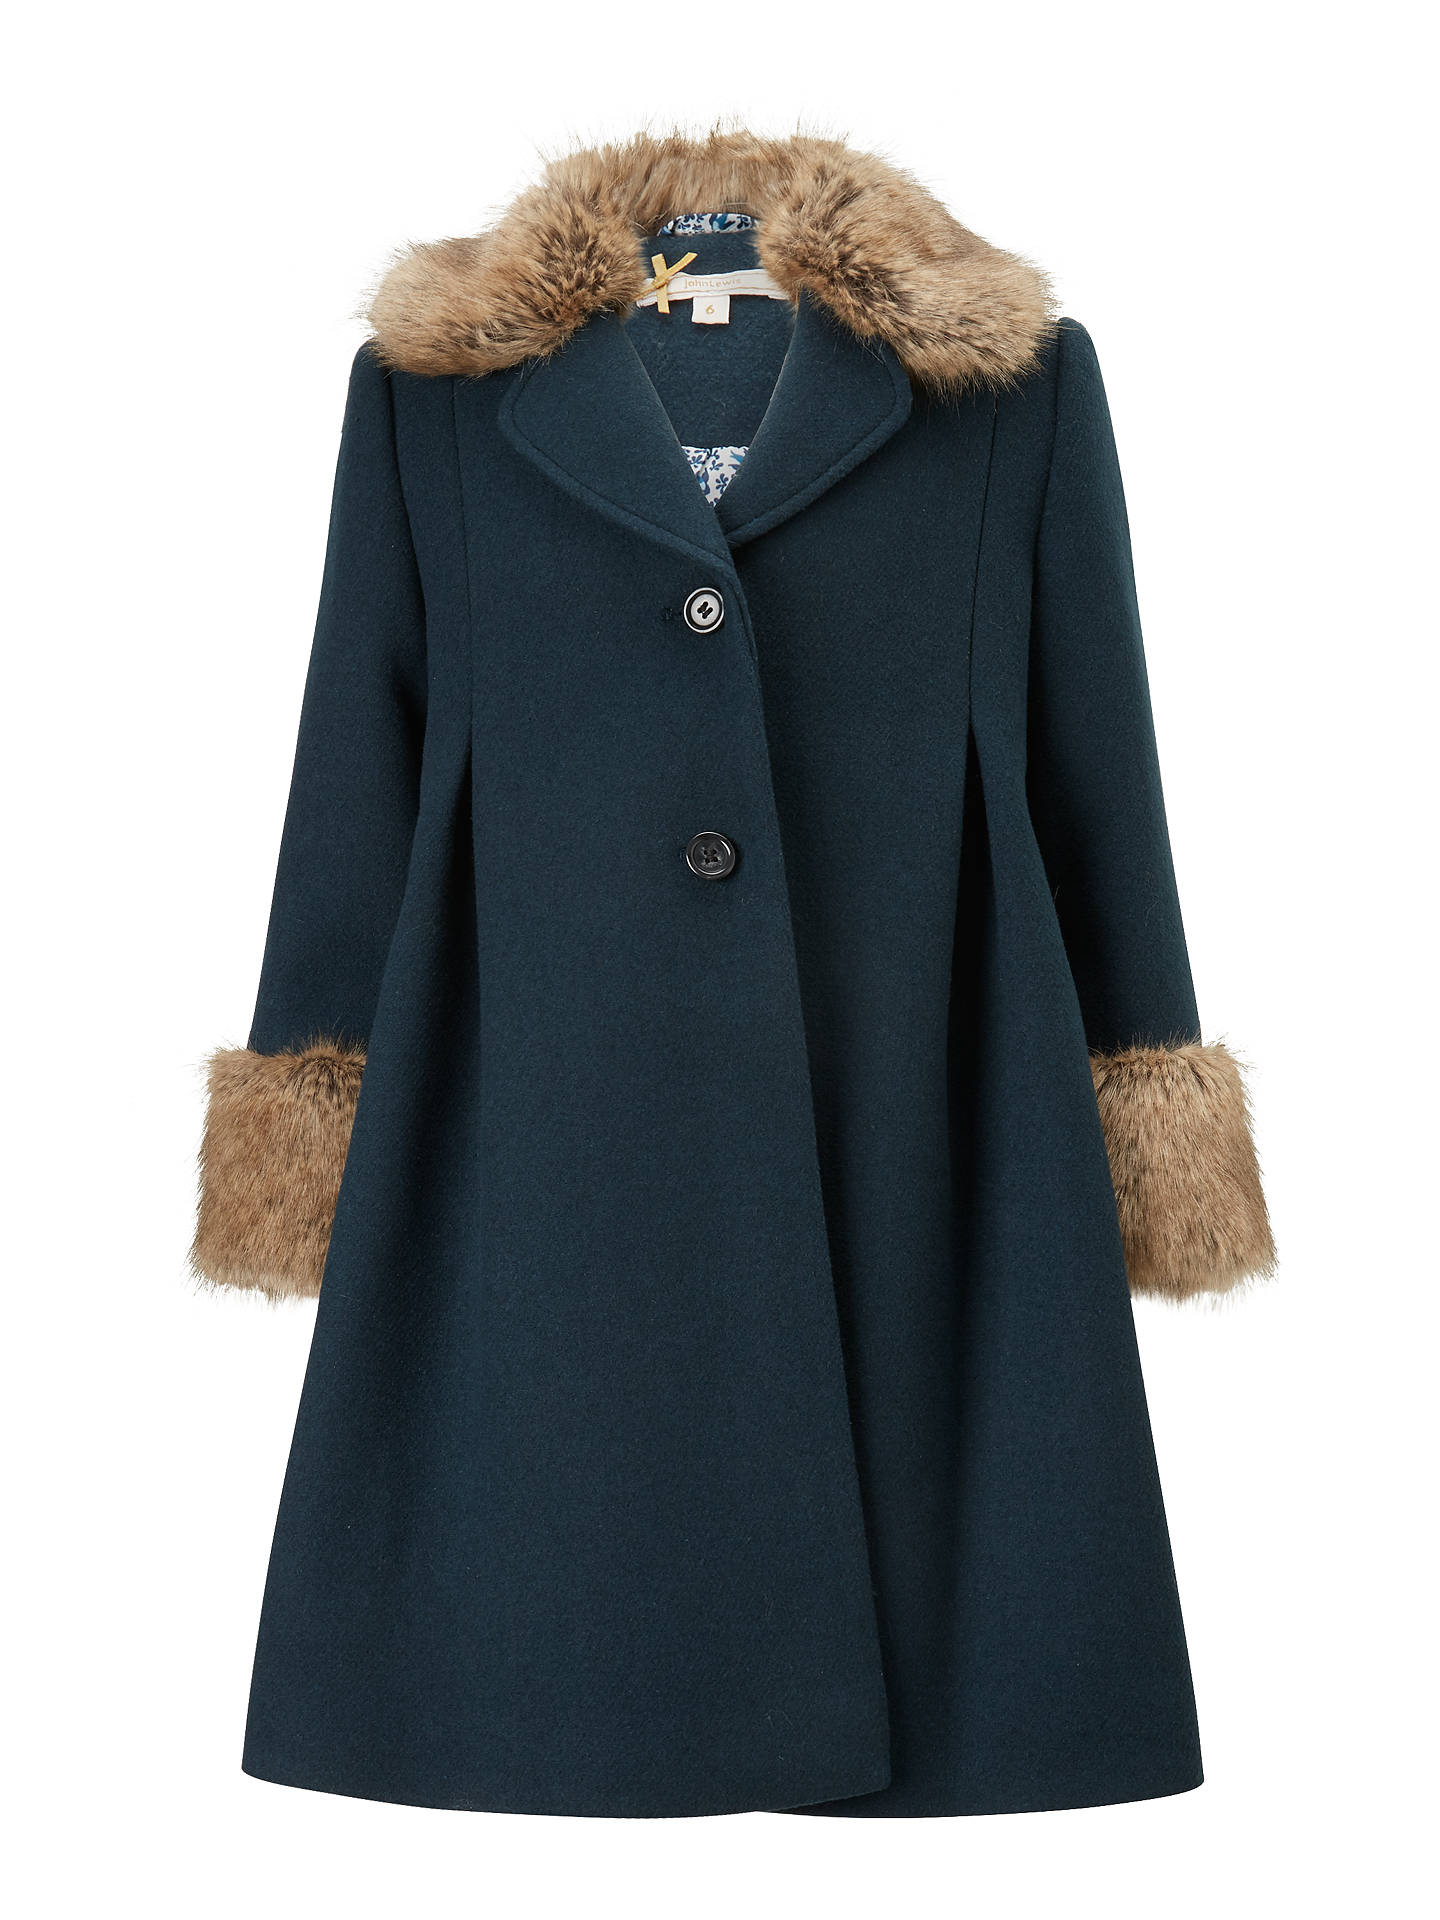 244d8ba5828 Buy John Lewis Heirloom Collection Faux Fur Trim Formal Coat, Teal, 3 years  Online ...